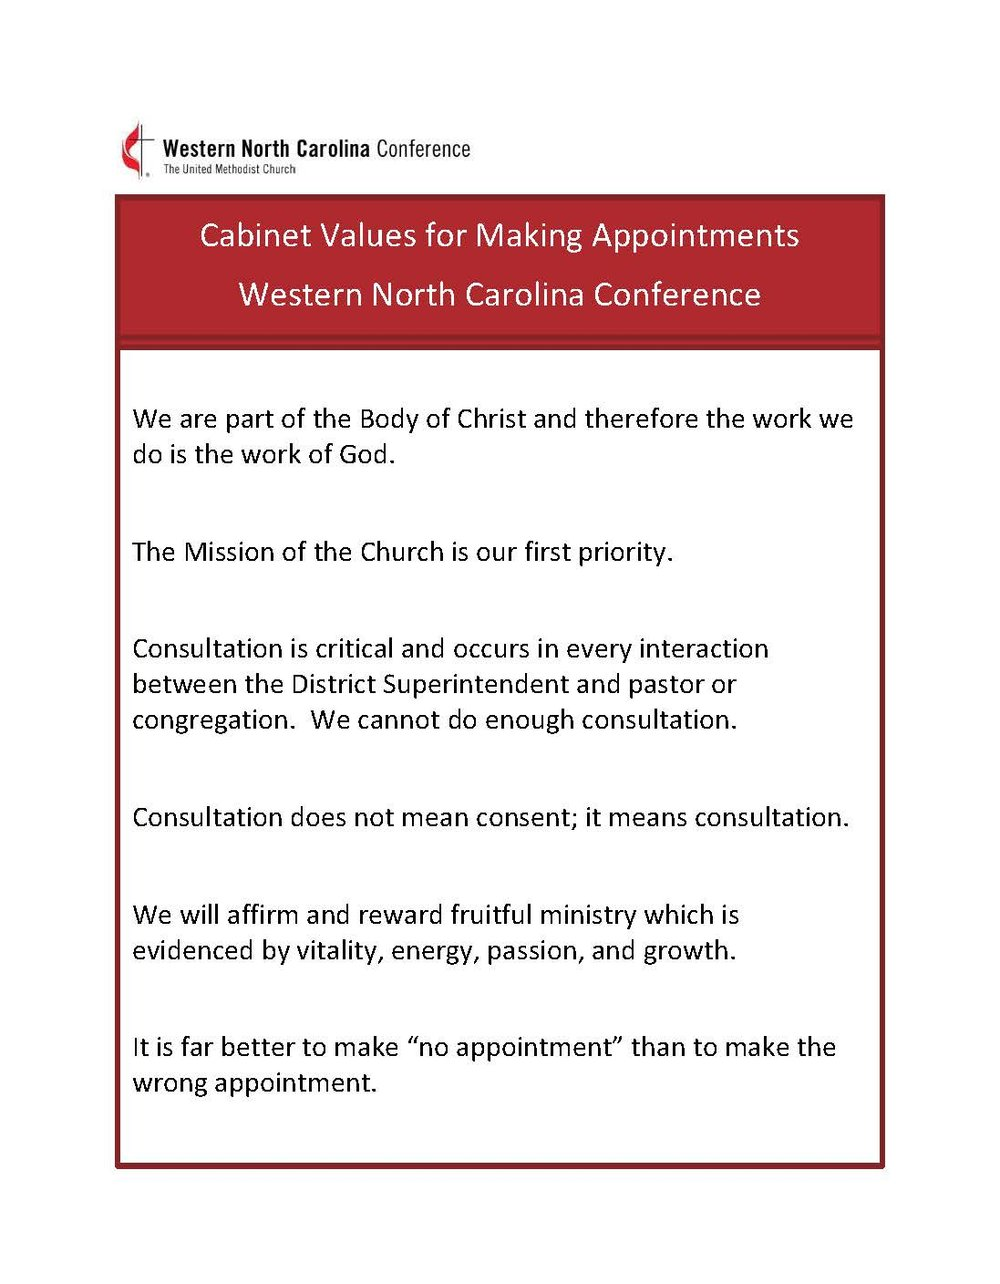 Appointment-Making Values.jpg